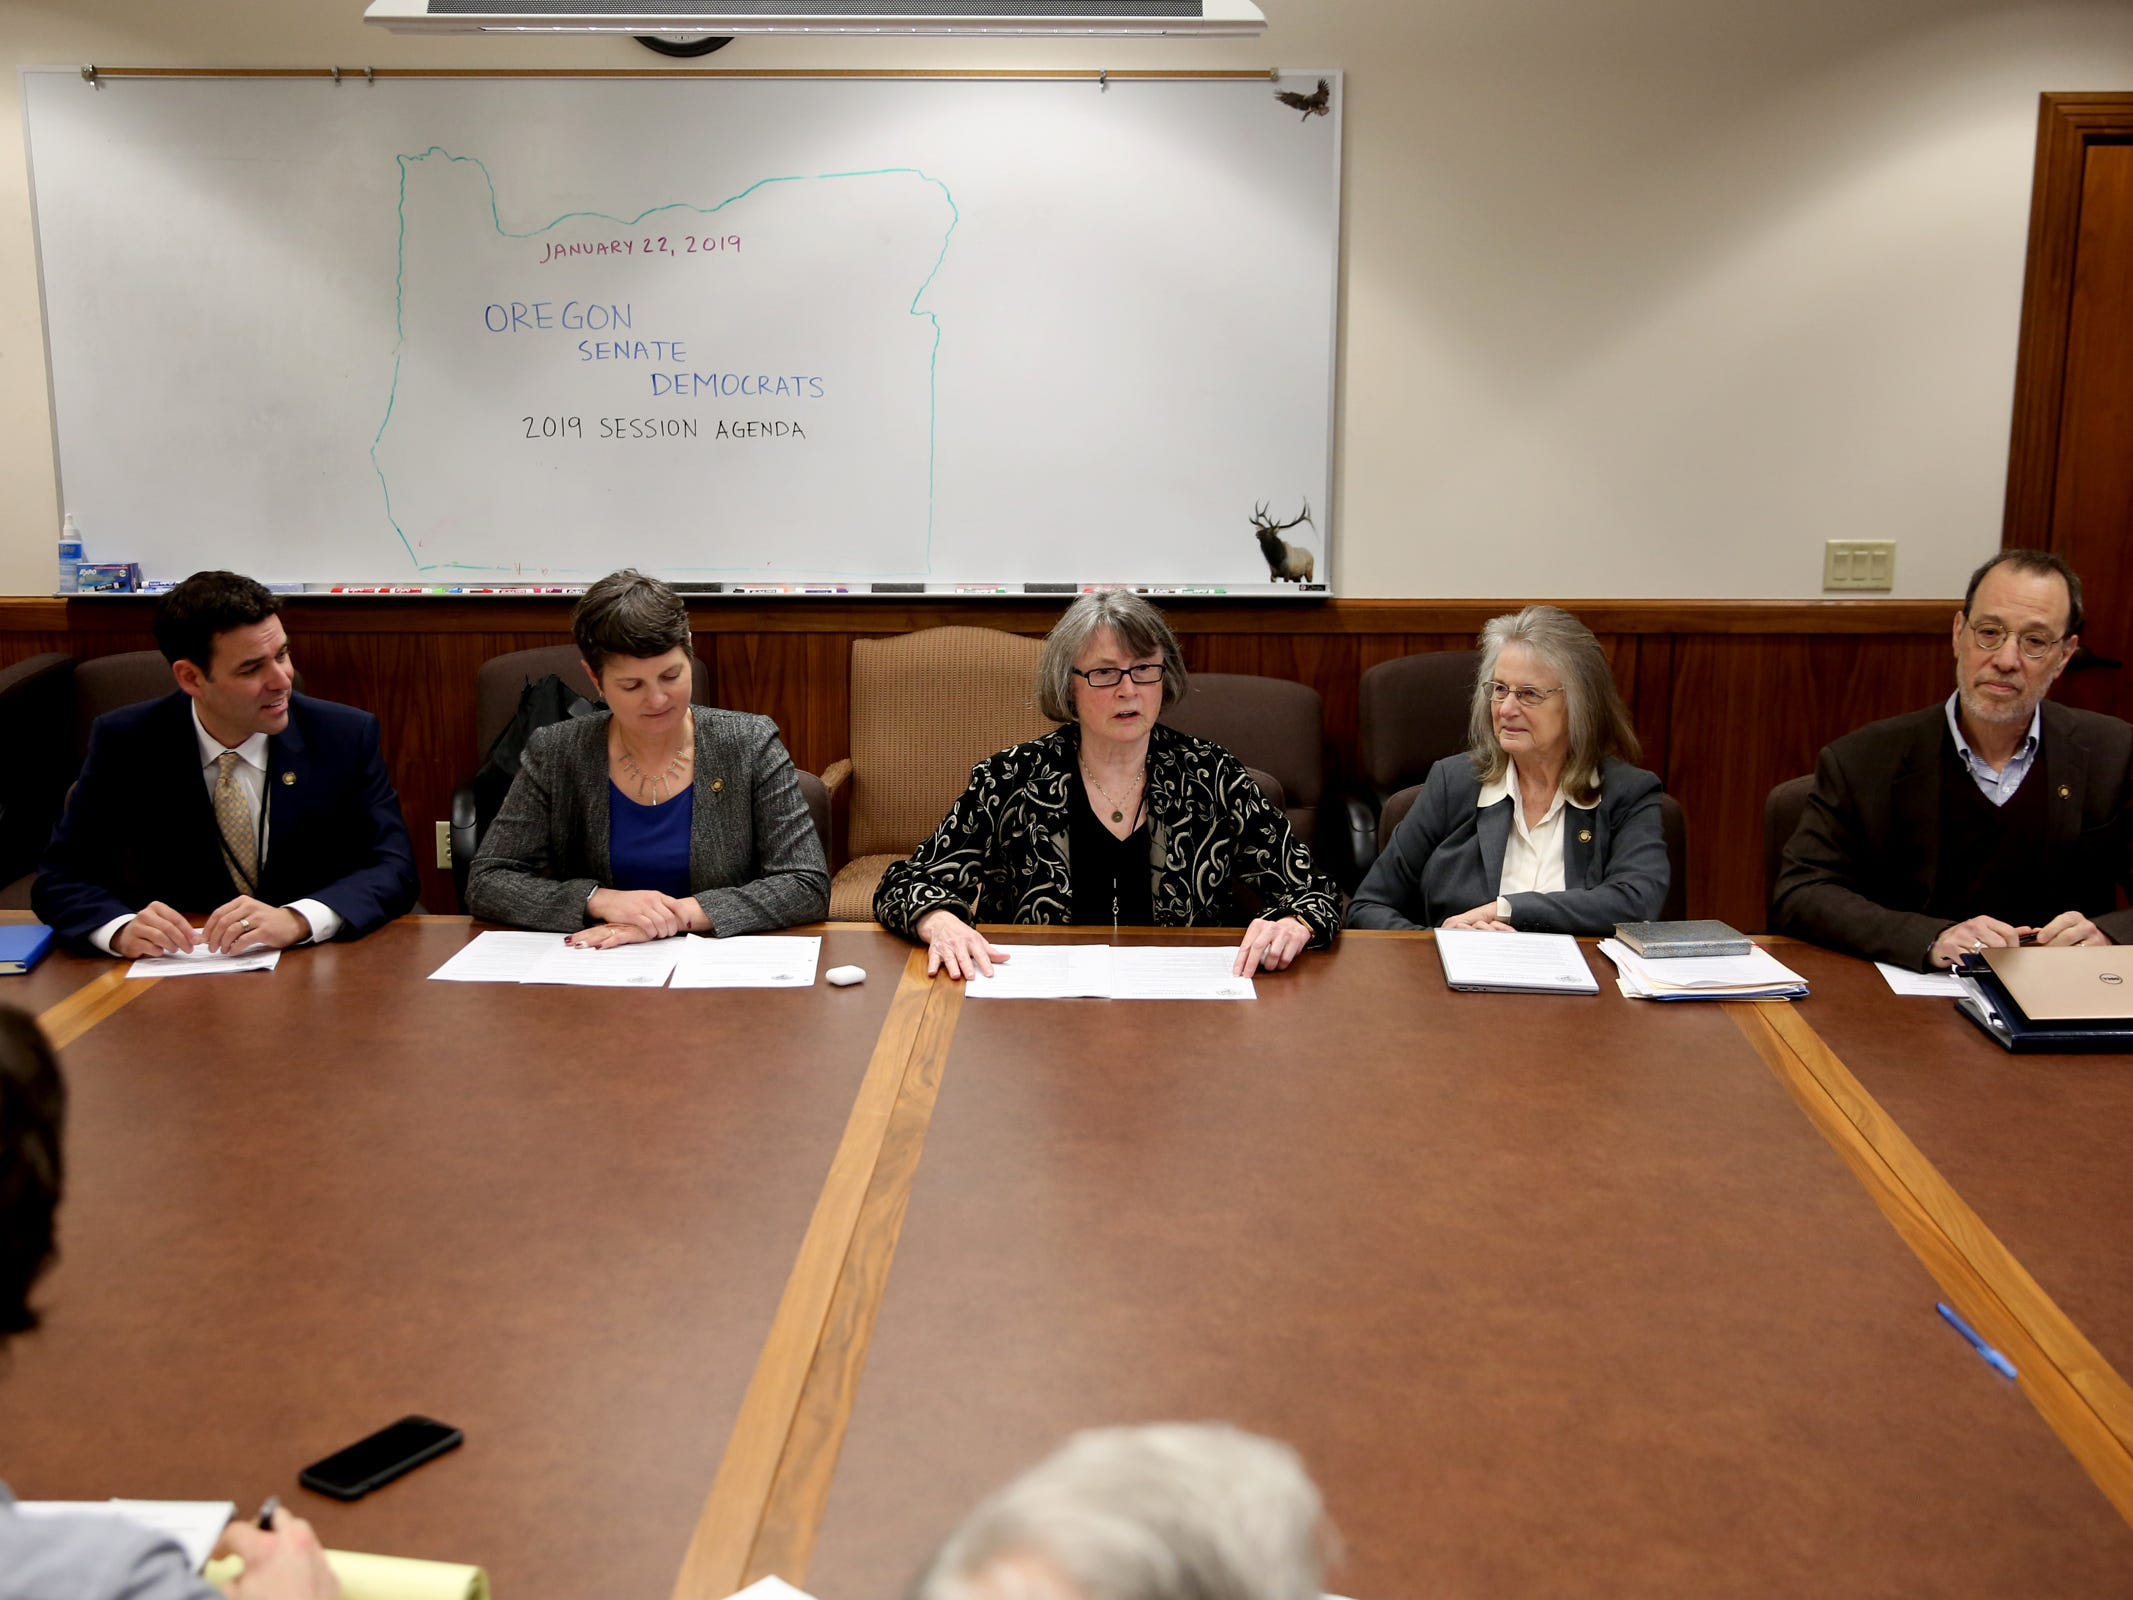 A meeting with Senate Democratic leadership, from left, Sen. Rob Wagner, Sen. Elizabeth Steiner Hayward, Sen. Ginny Burdick, Sen. Laurie Monnes Anderson and Sen. Michael Dembrow at the Oregon State Capitol in Salem on the first day of the 2019 legislative session, Tuesday, Jan. 22, 2019.